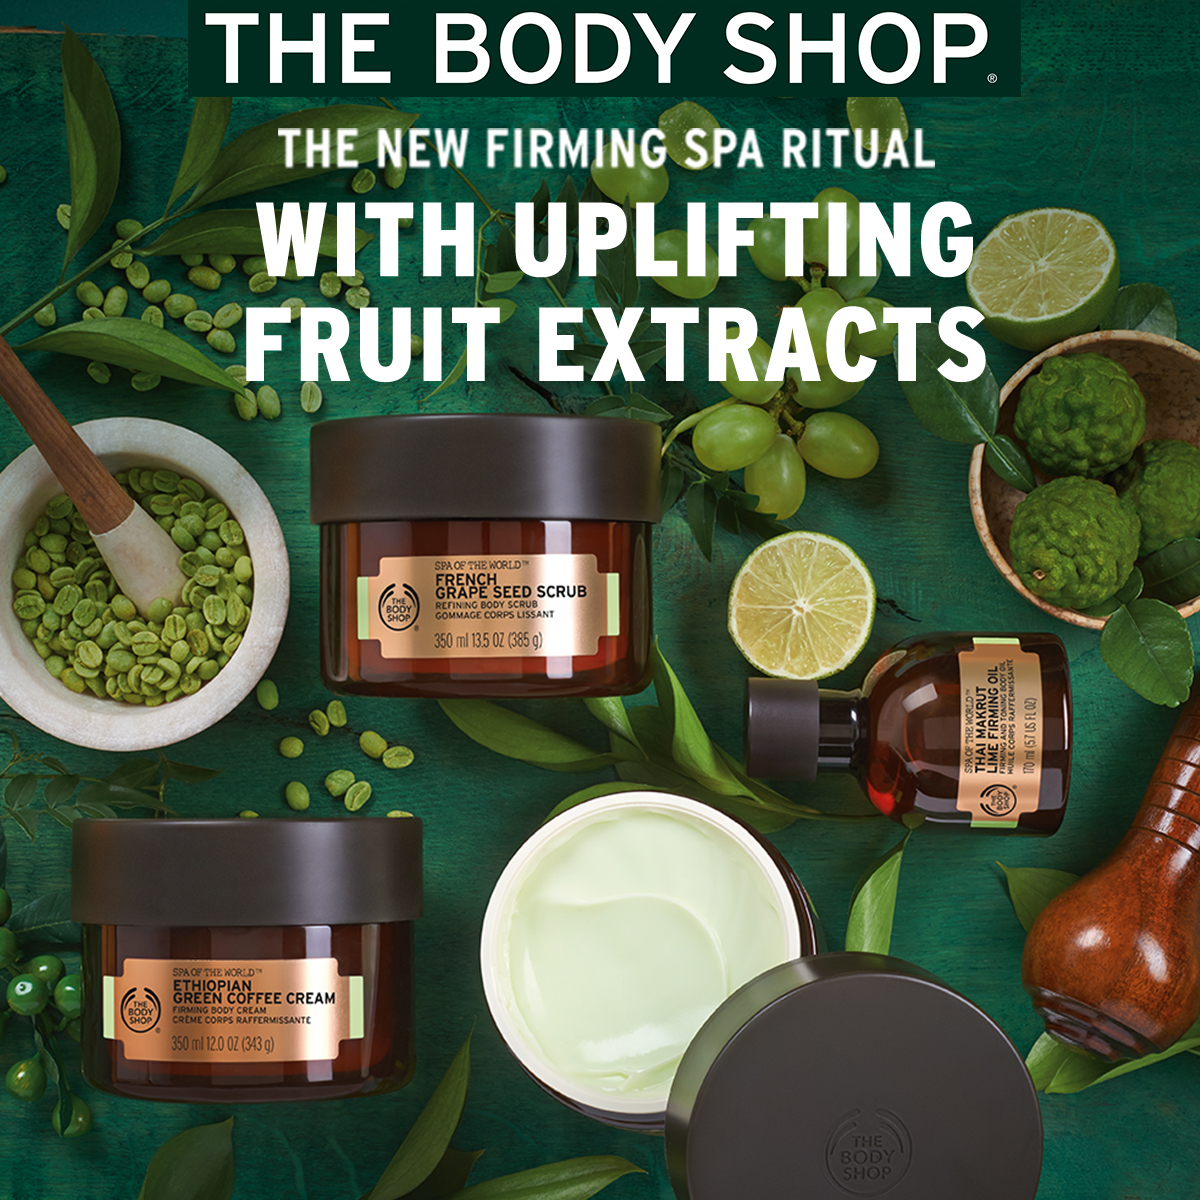 The Body Shop October 2017 Highlights